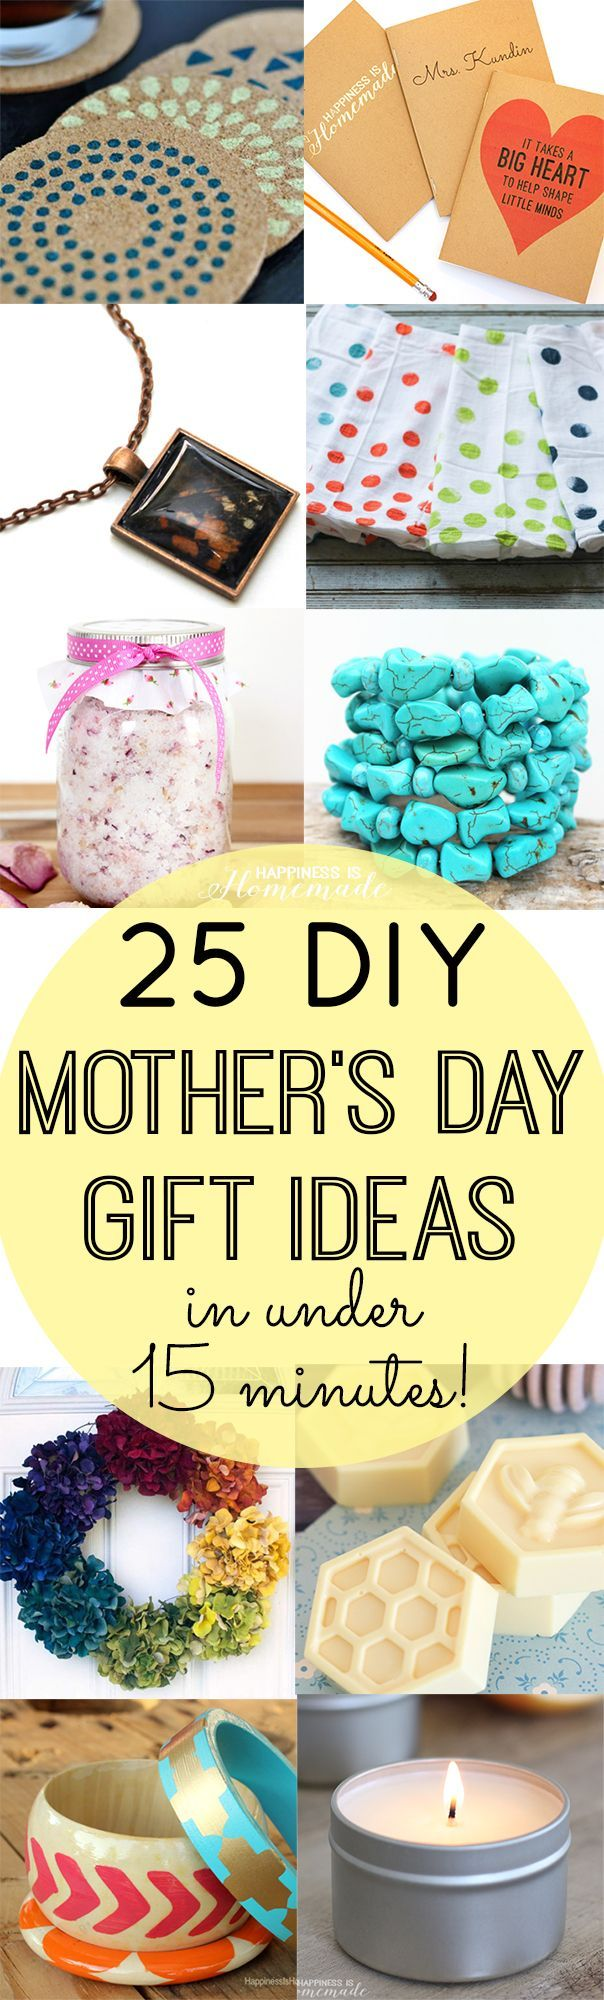 497 Best Images About Handmade Gifts On Pinterest